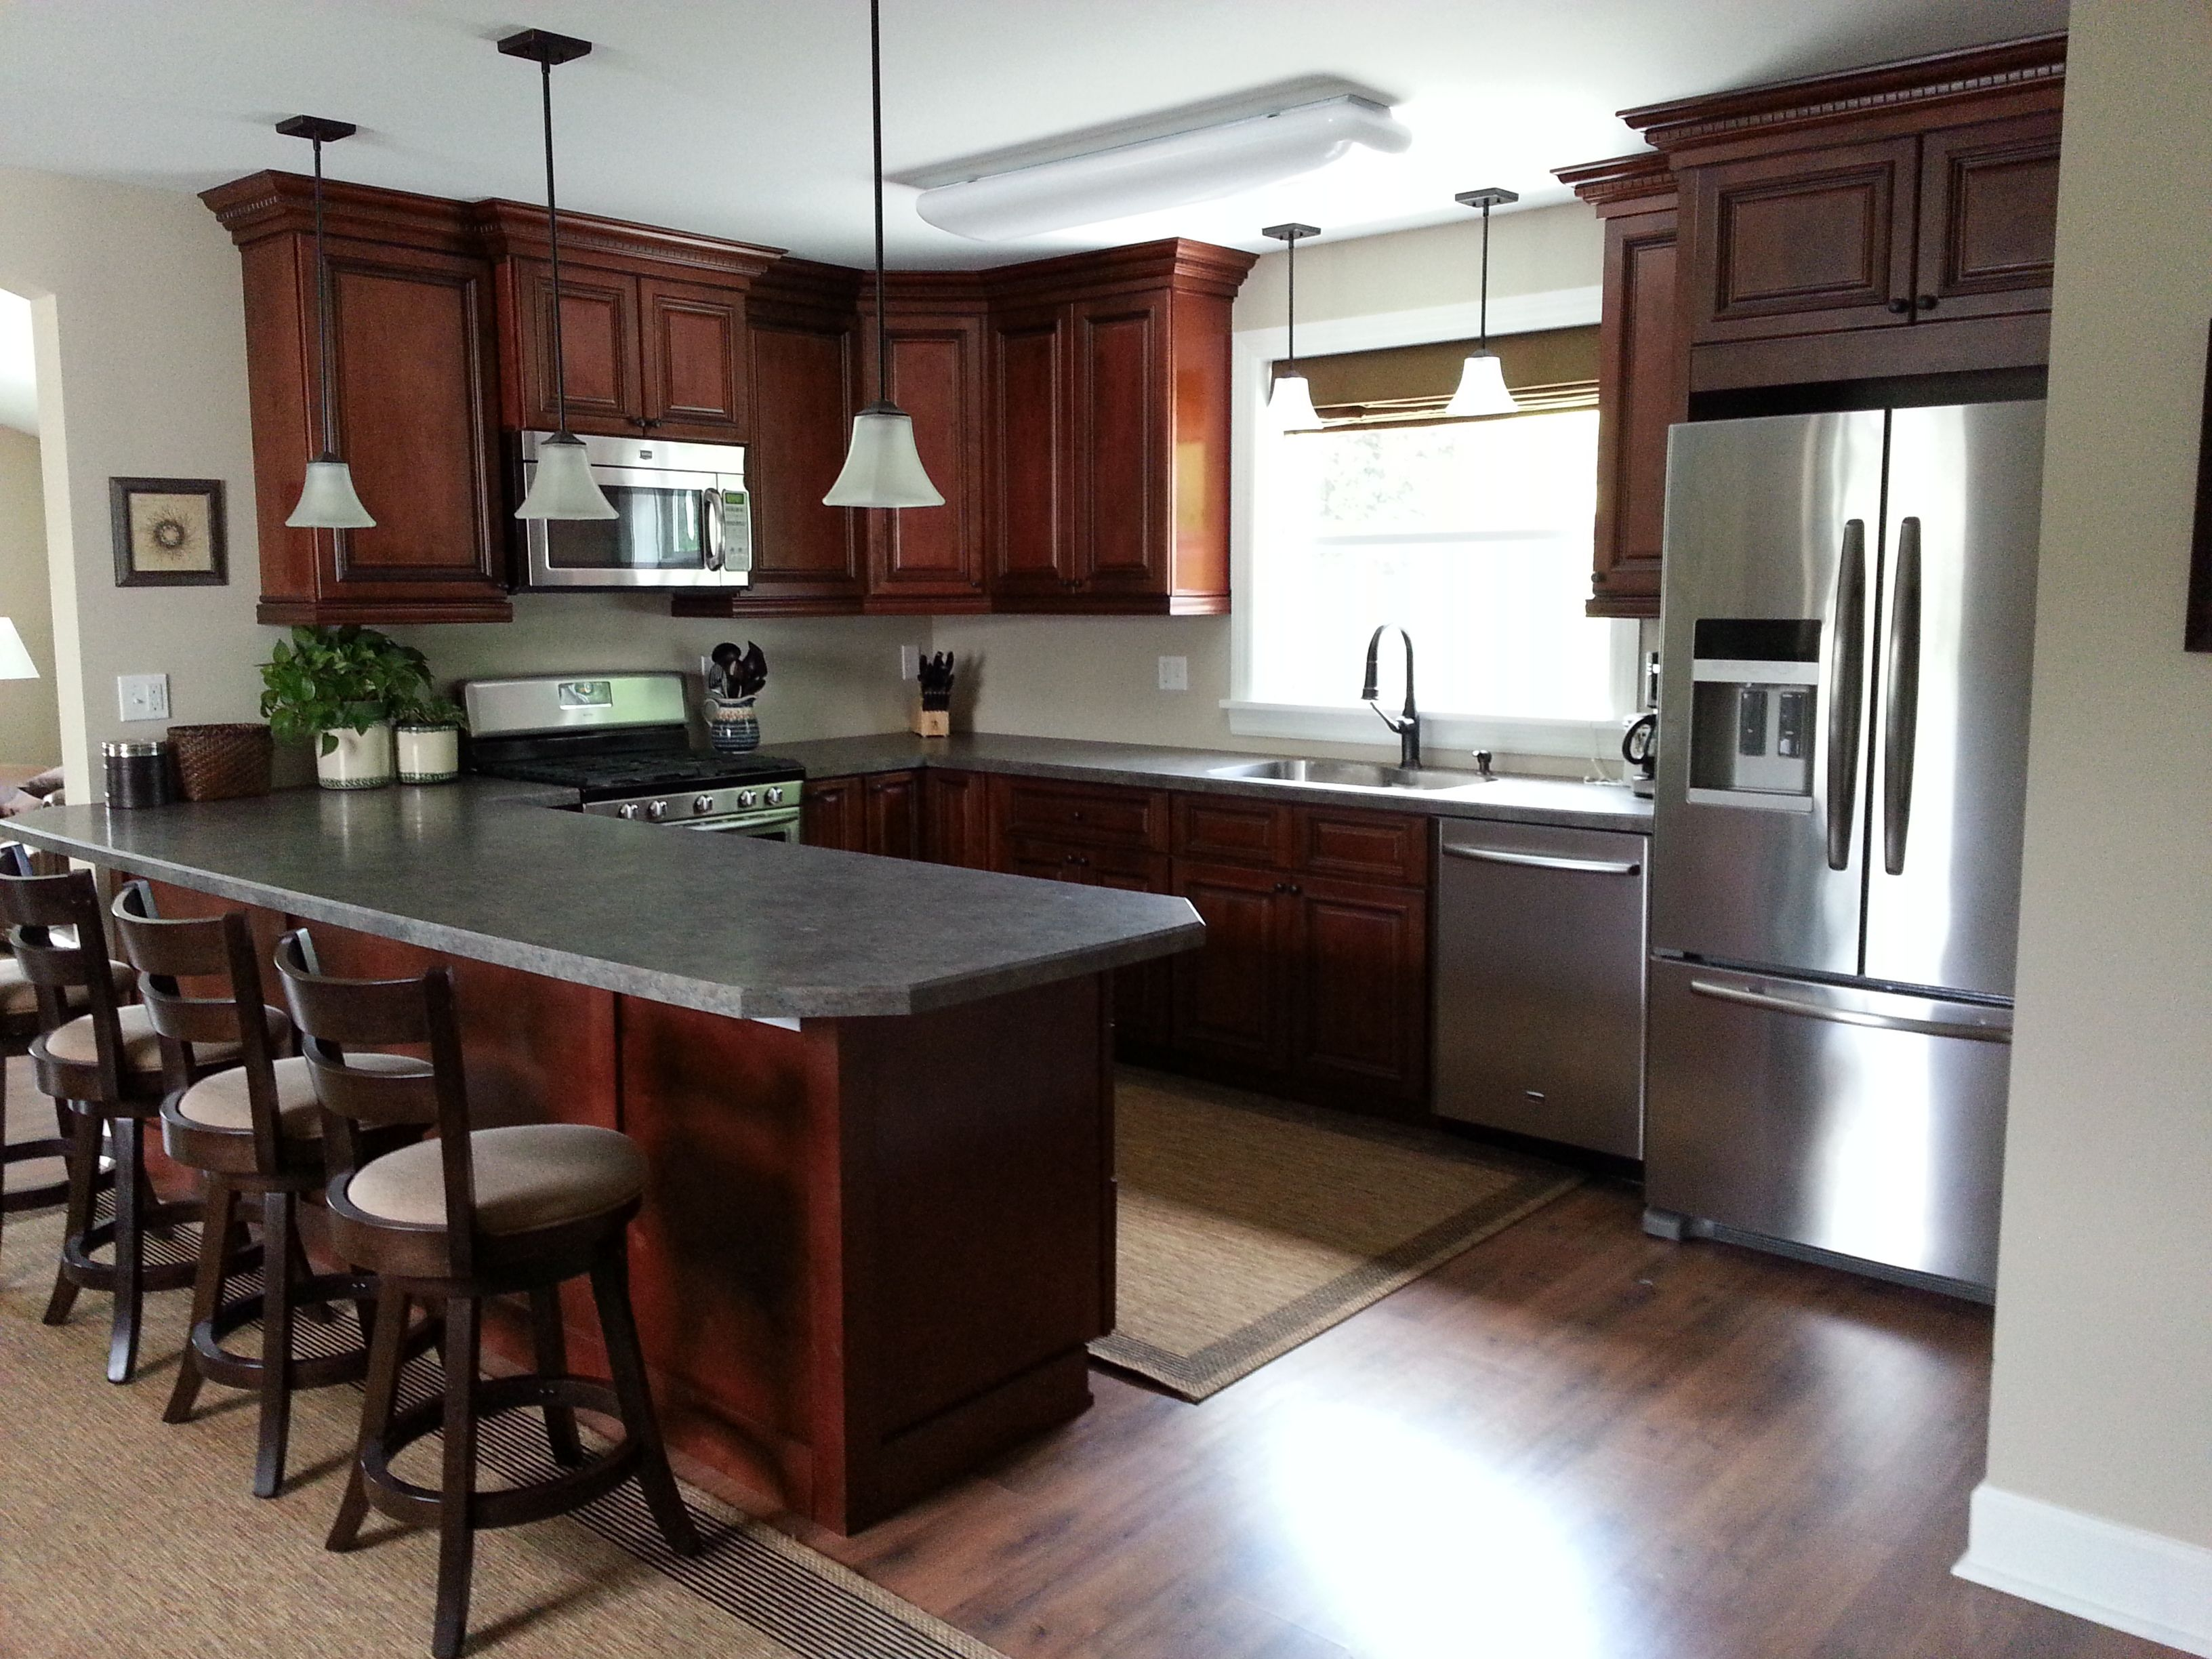 My Kitchen Brandywine Cabinets In Kitchen Work Area Extended Counter For